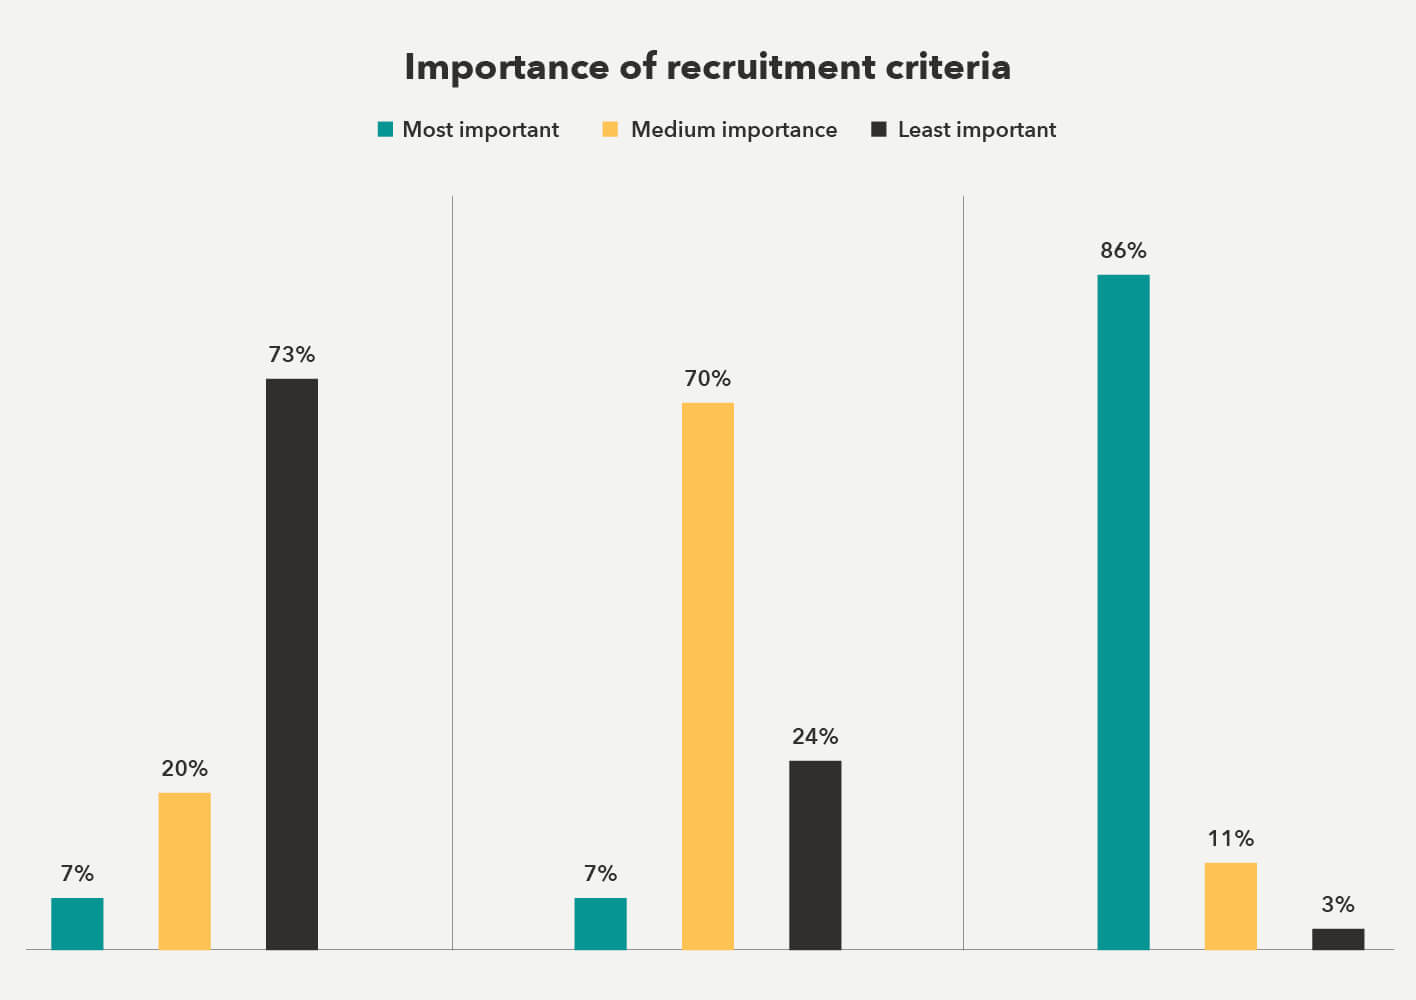 Importance of recruitment criteria